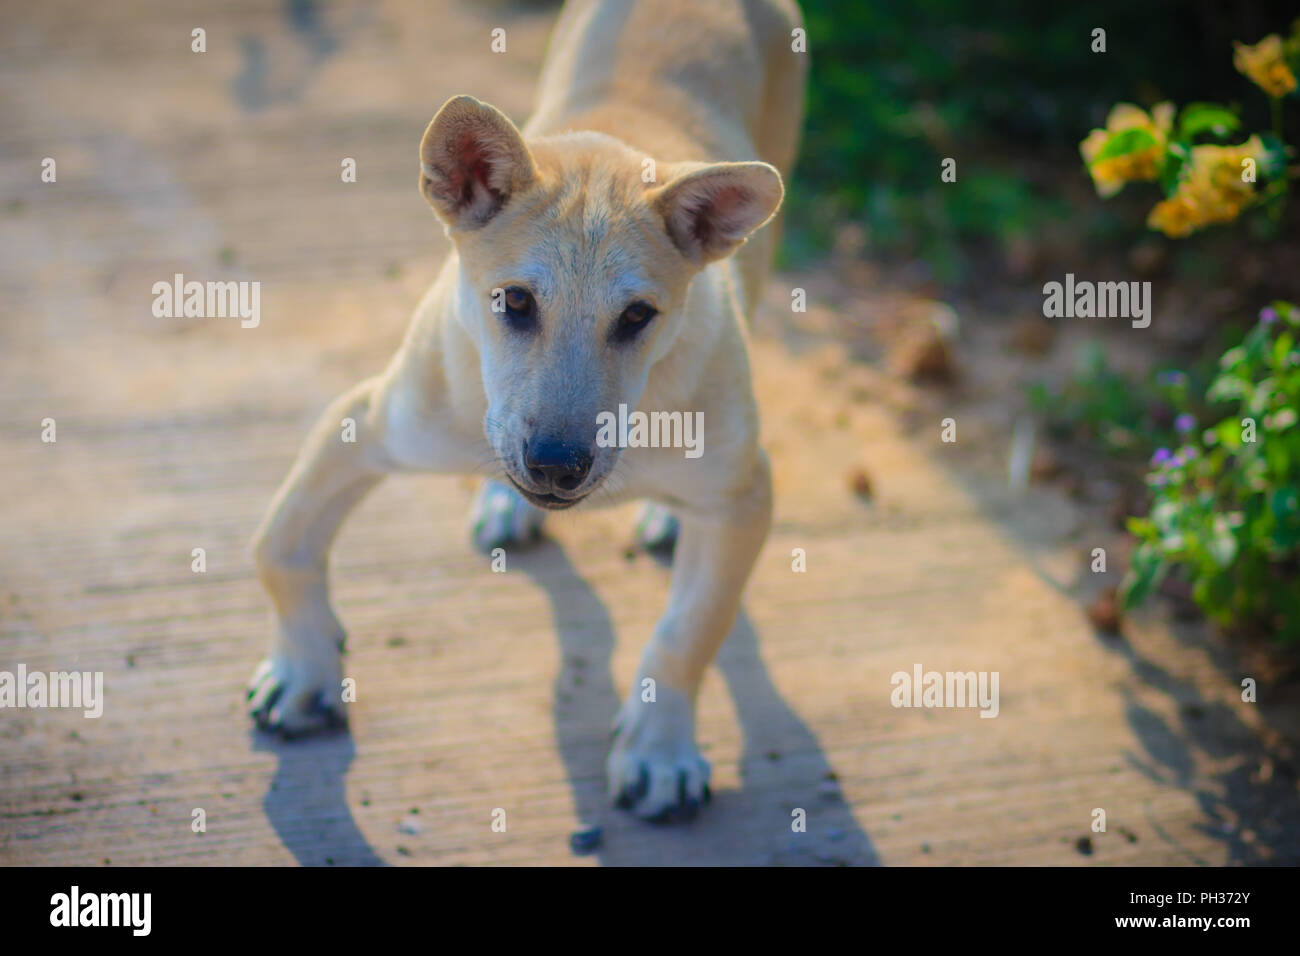 how to stop dog barking in morning